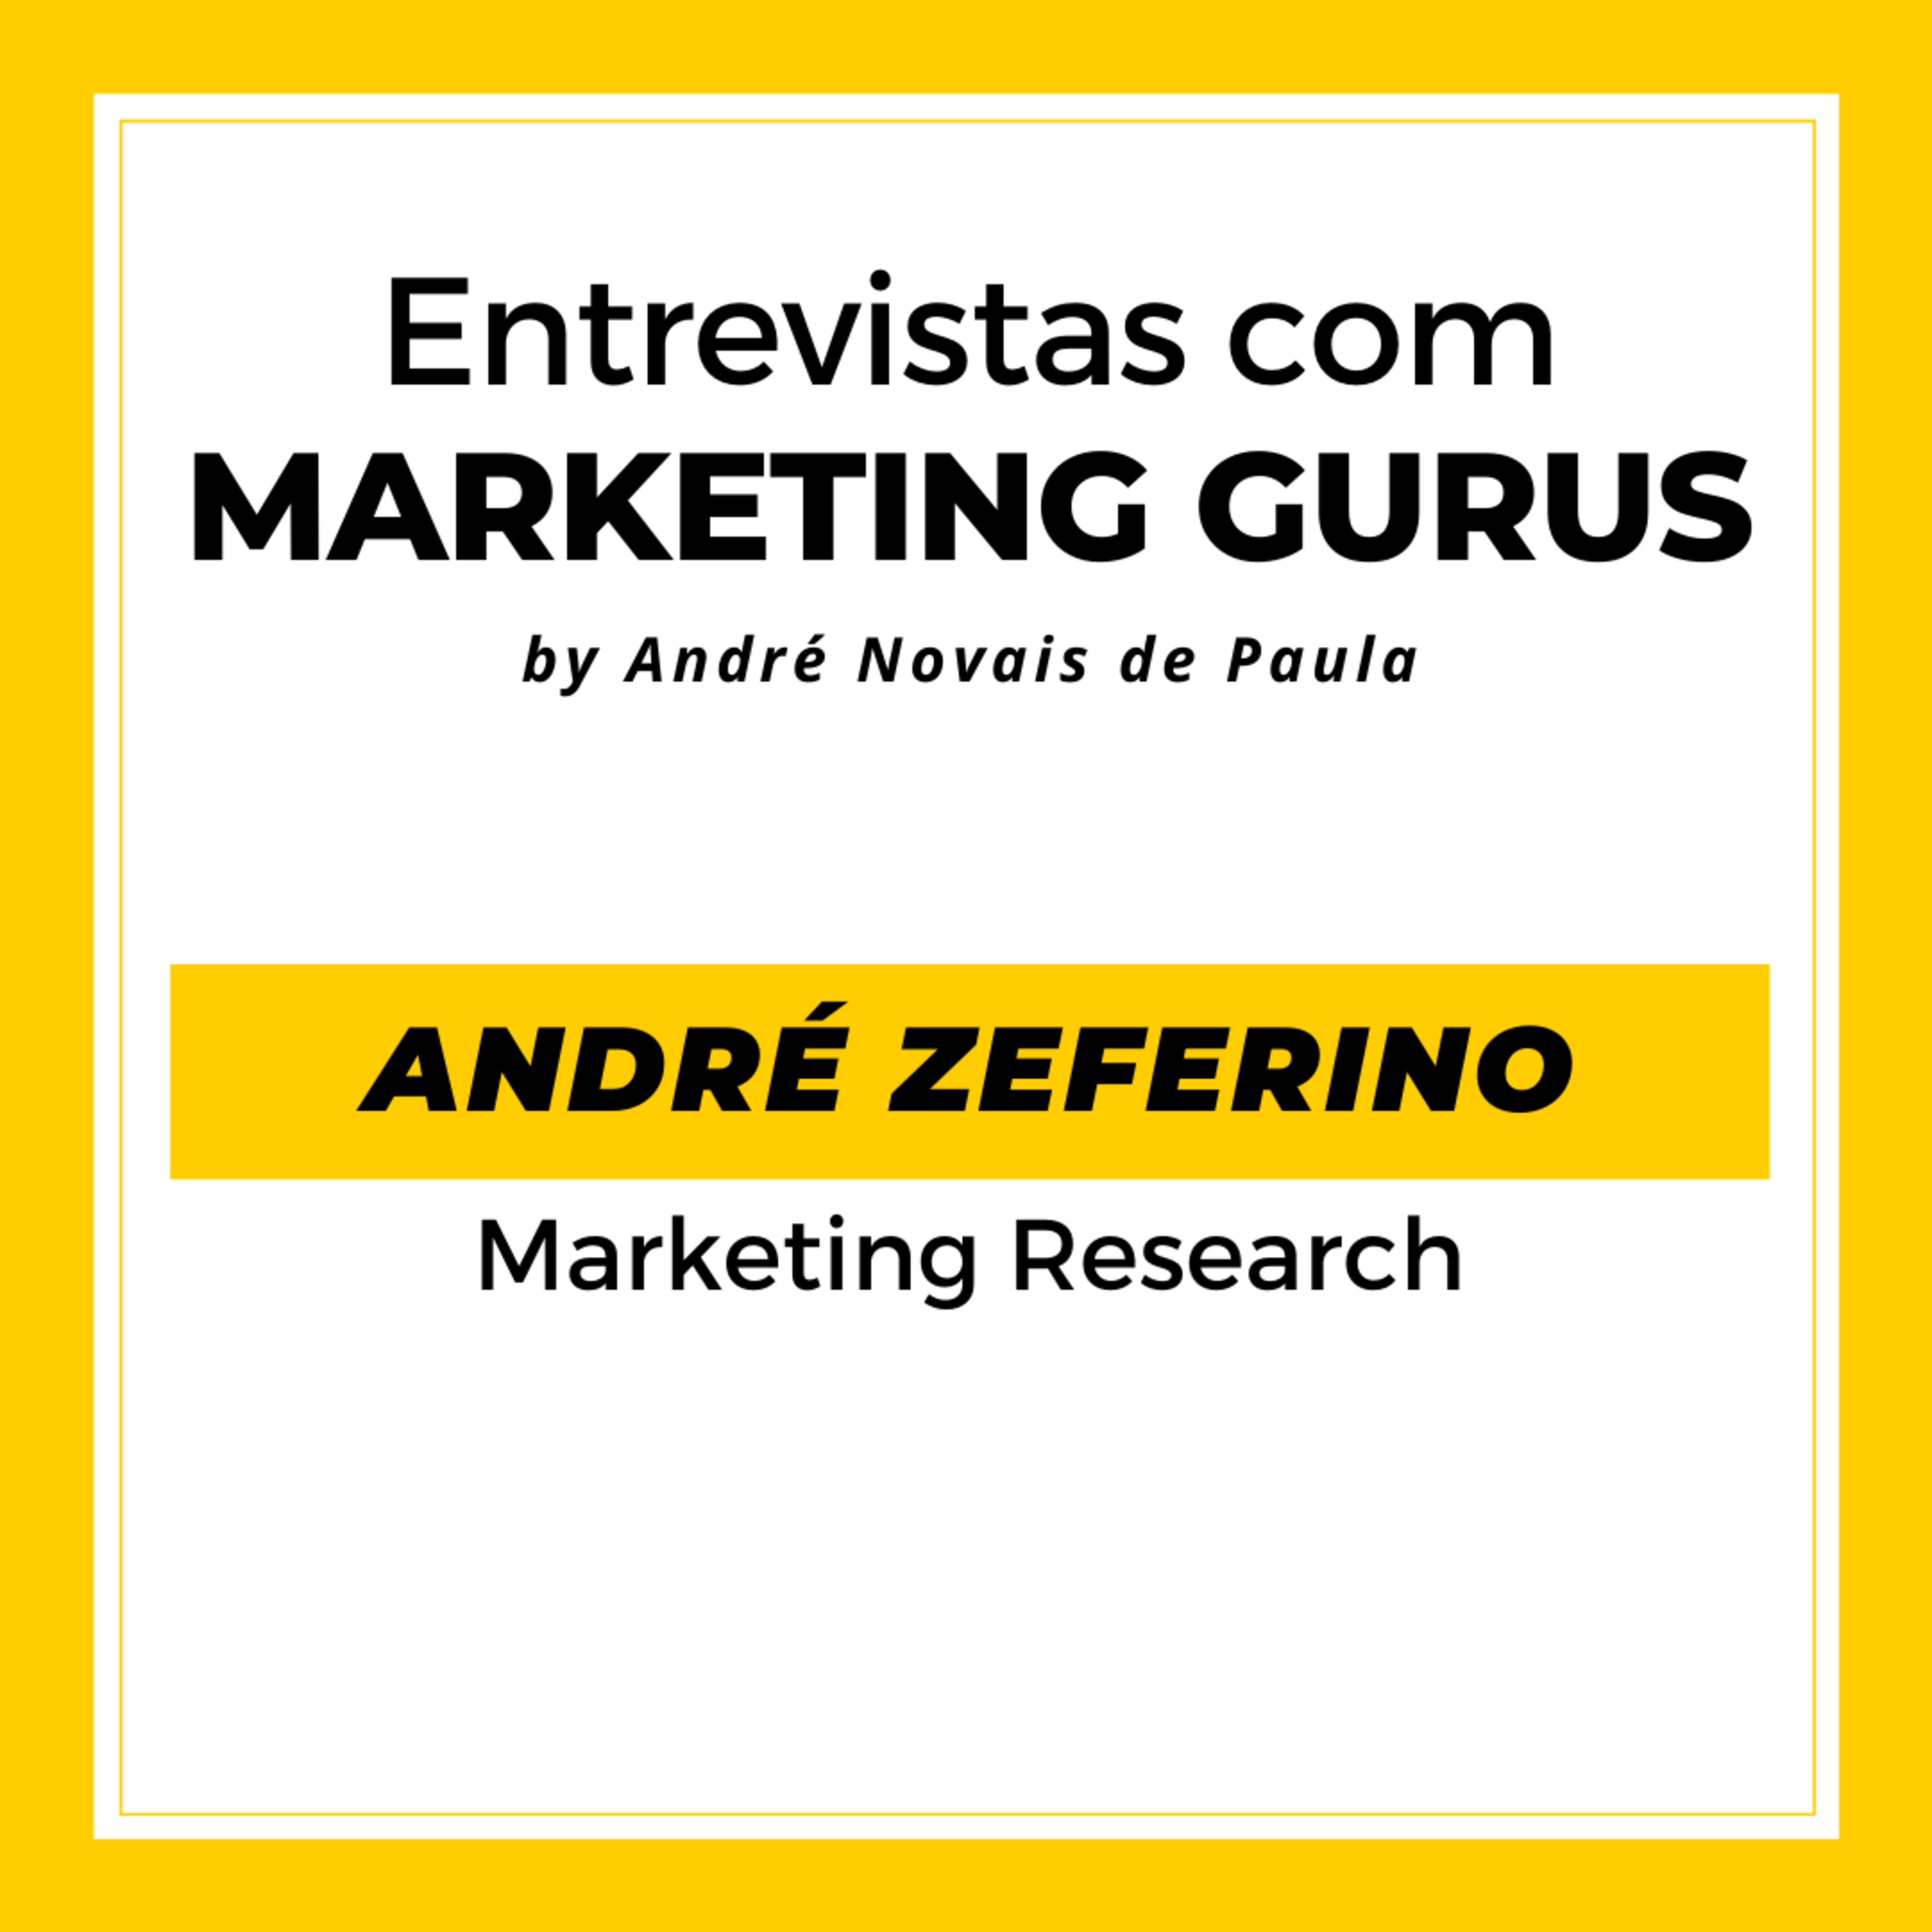 #29 André Zeferino - Marketing Research